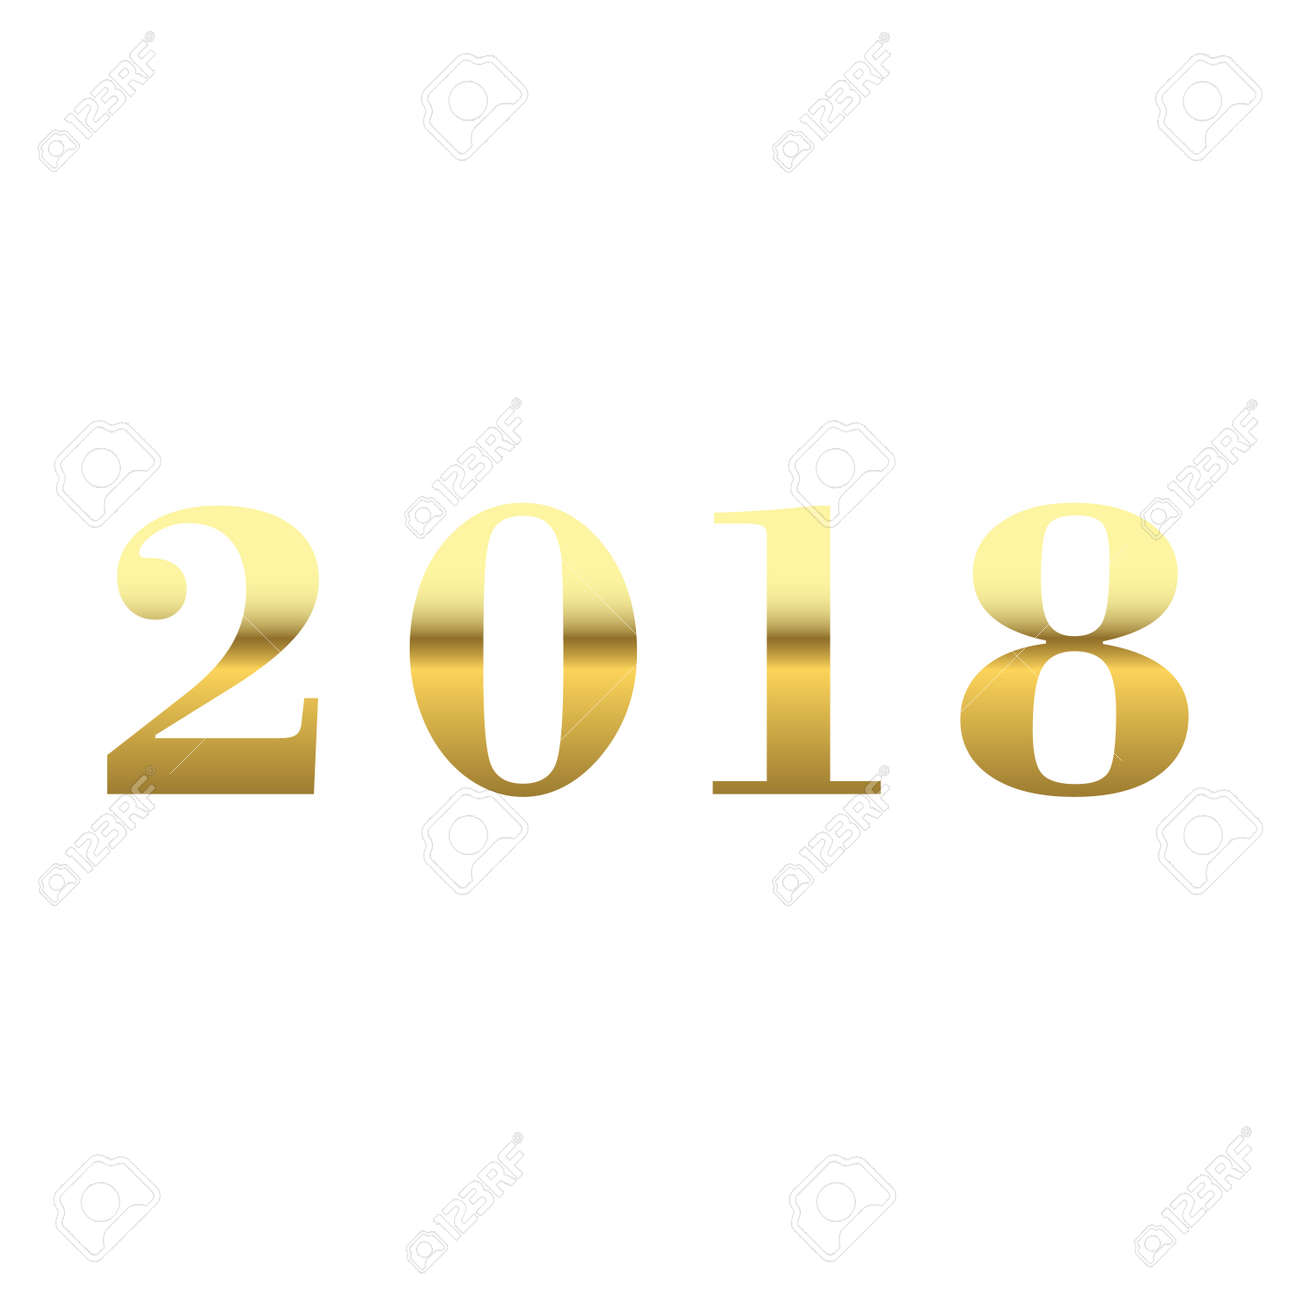 happy new year golden numbers gold numbers 2018 on white background christmas and new